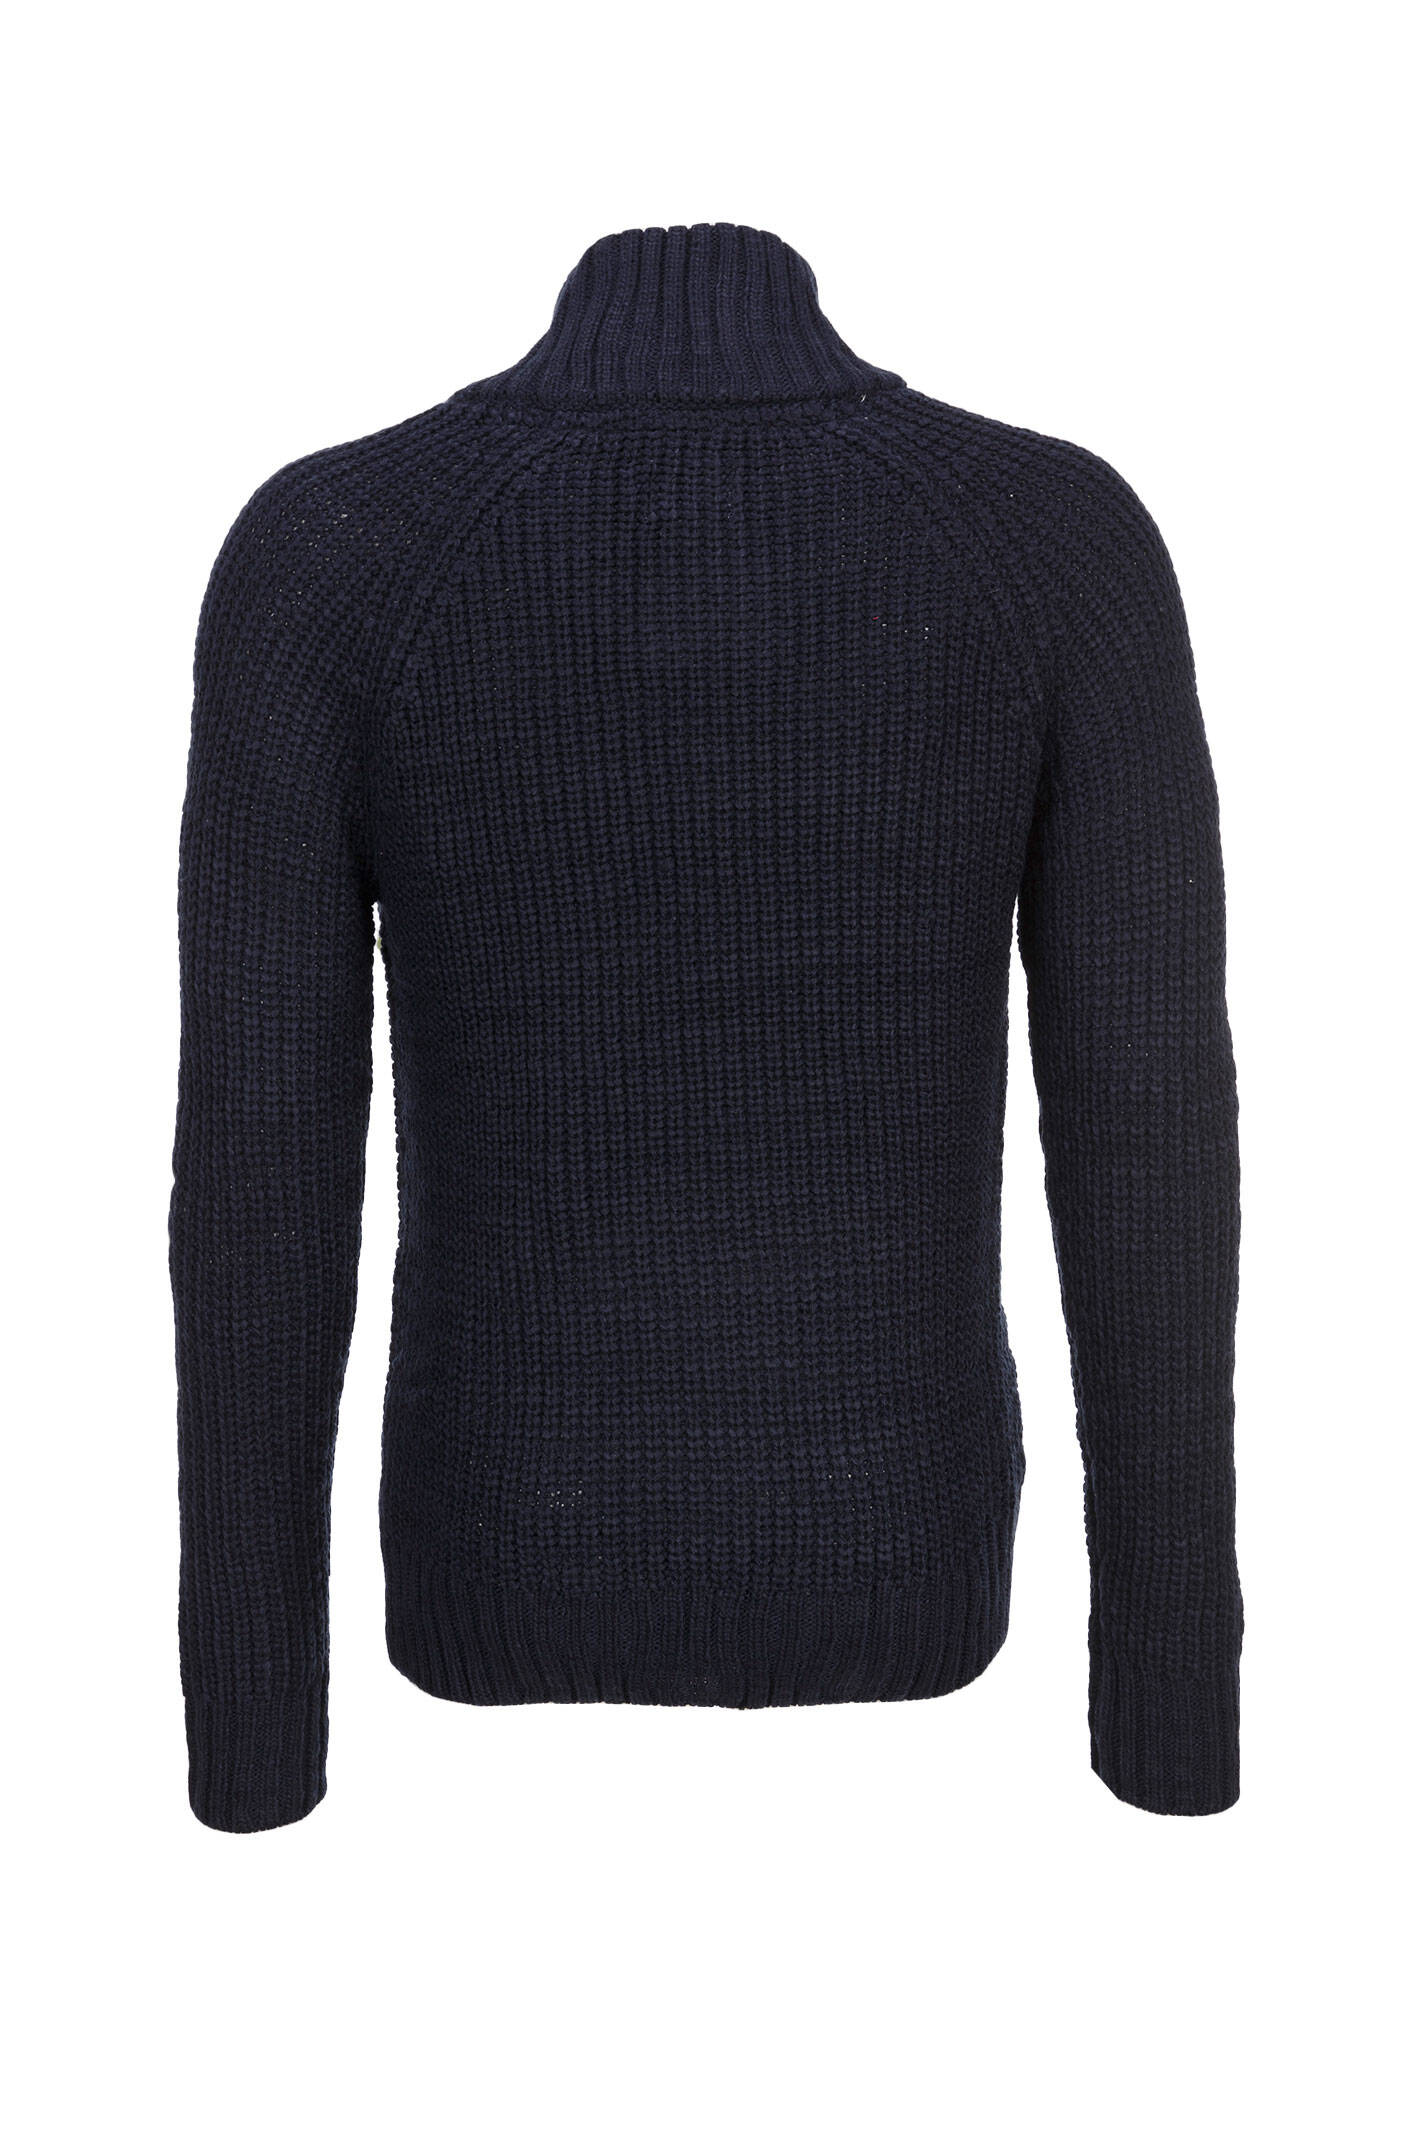 sweater pepe jeans london navy blue knitwear. Black Bedroom Furniture Sets. Home Design Ideas